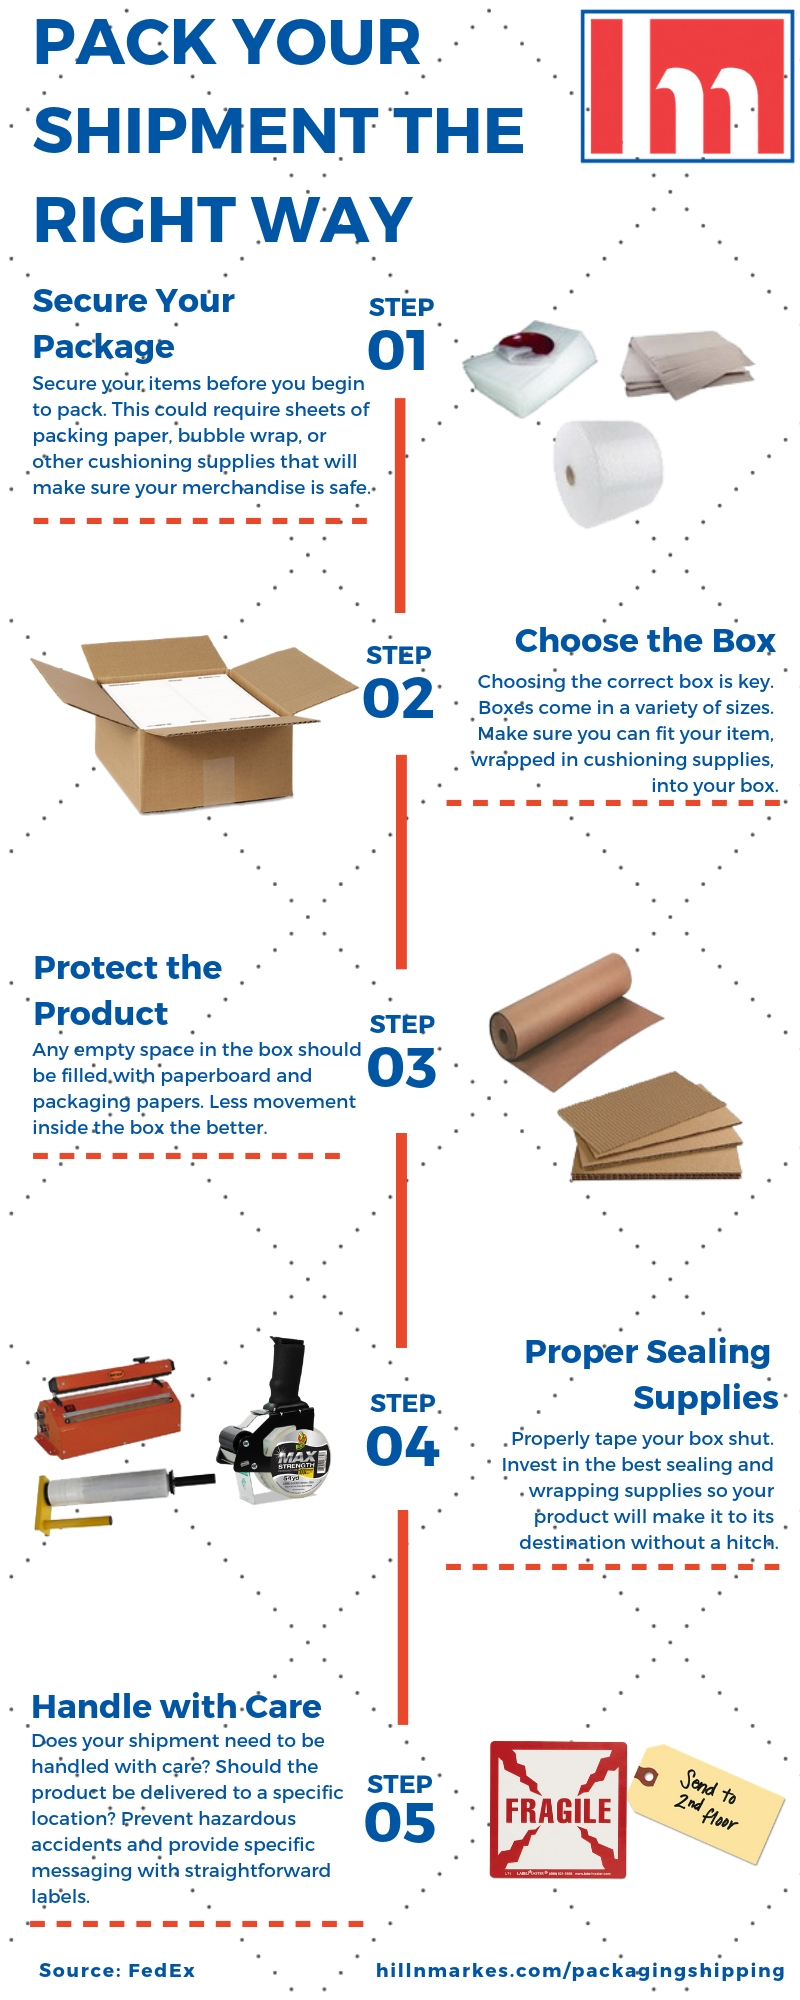 Infographic: Pack Your Shipment the Right Way